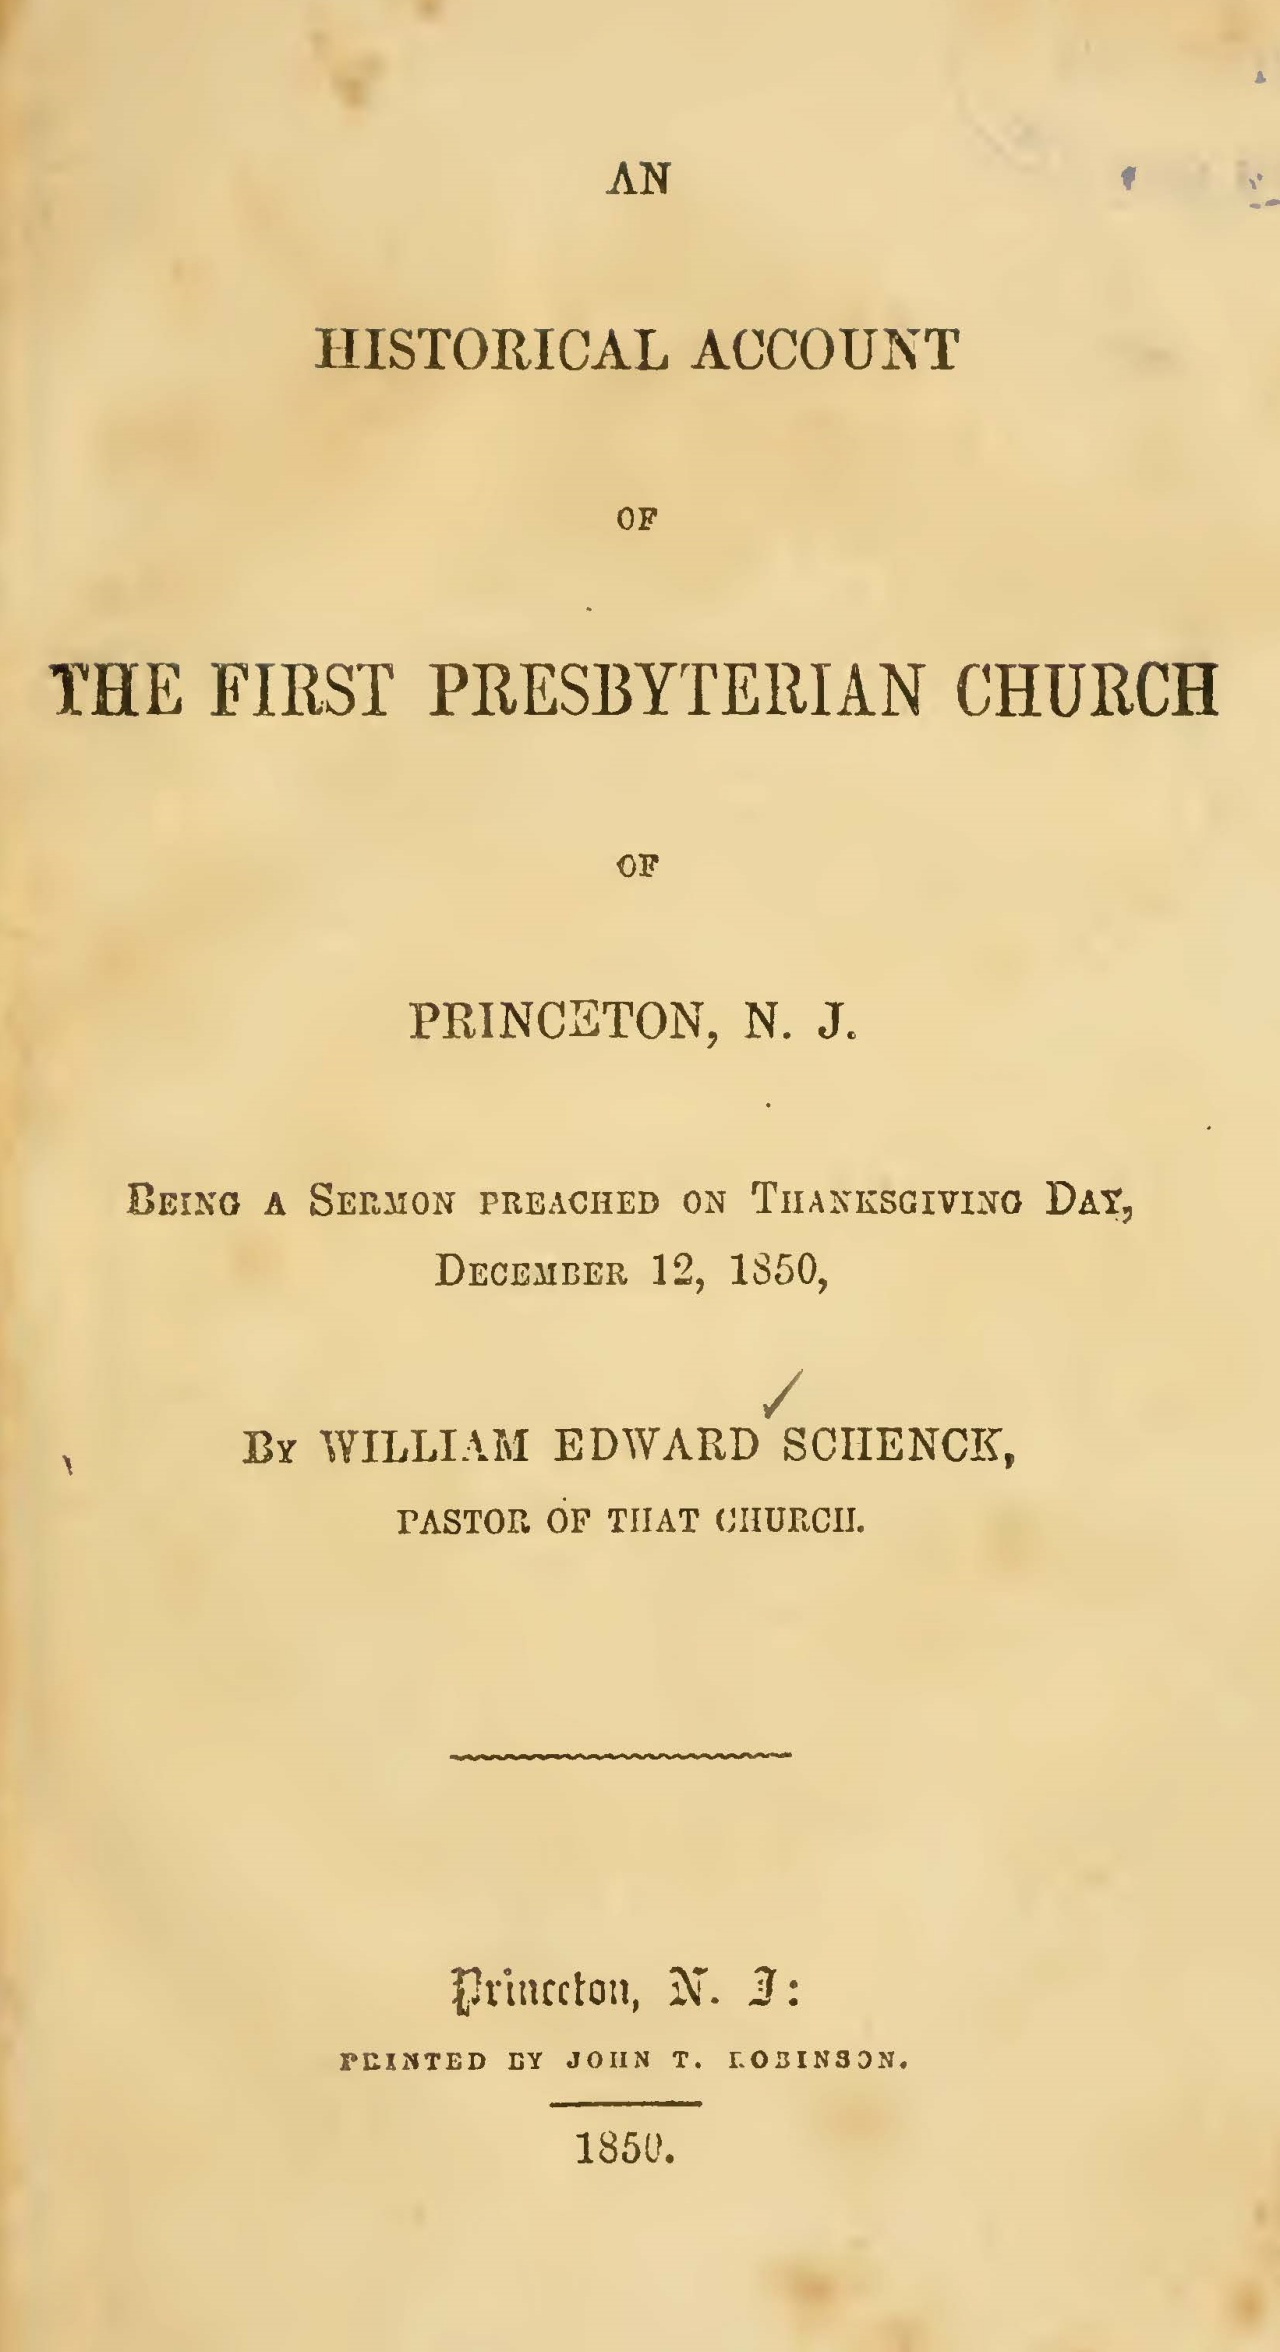 Schenck, William Edward, An Historical Account of the First Presbyterian Church Title Page.jpg